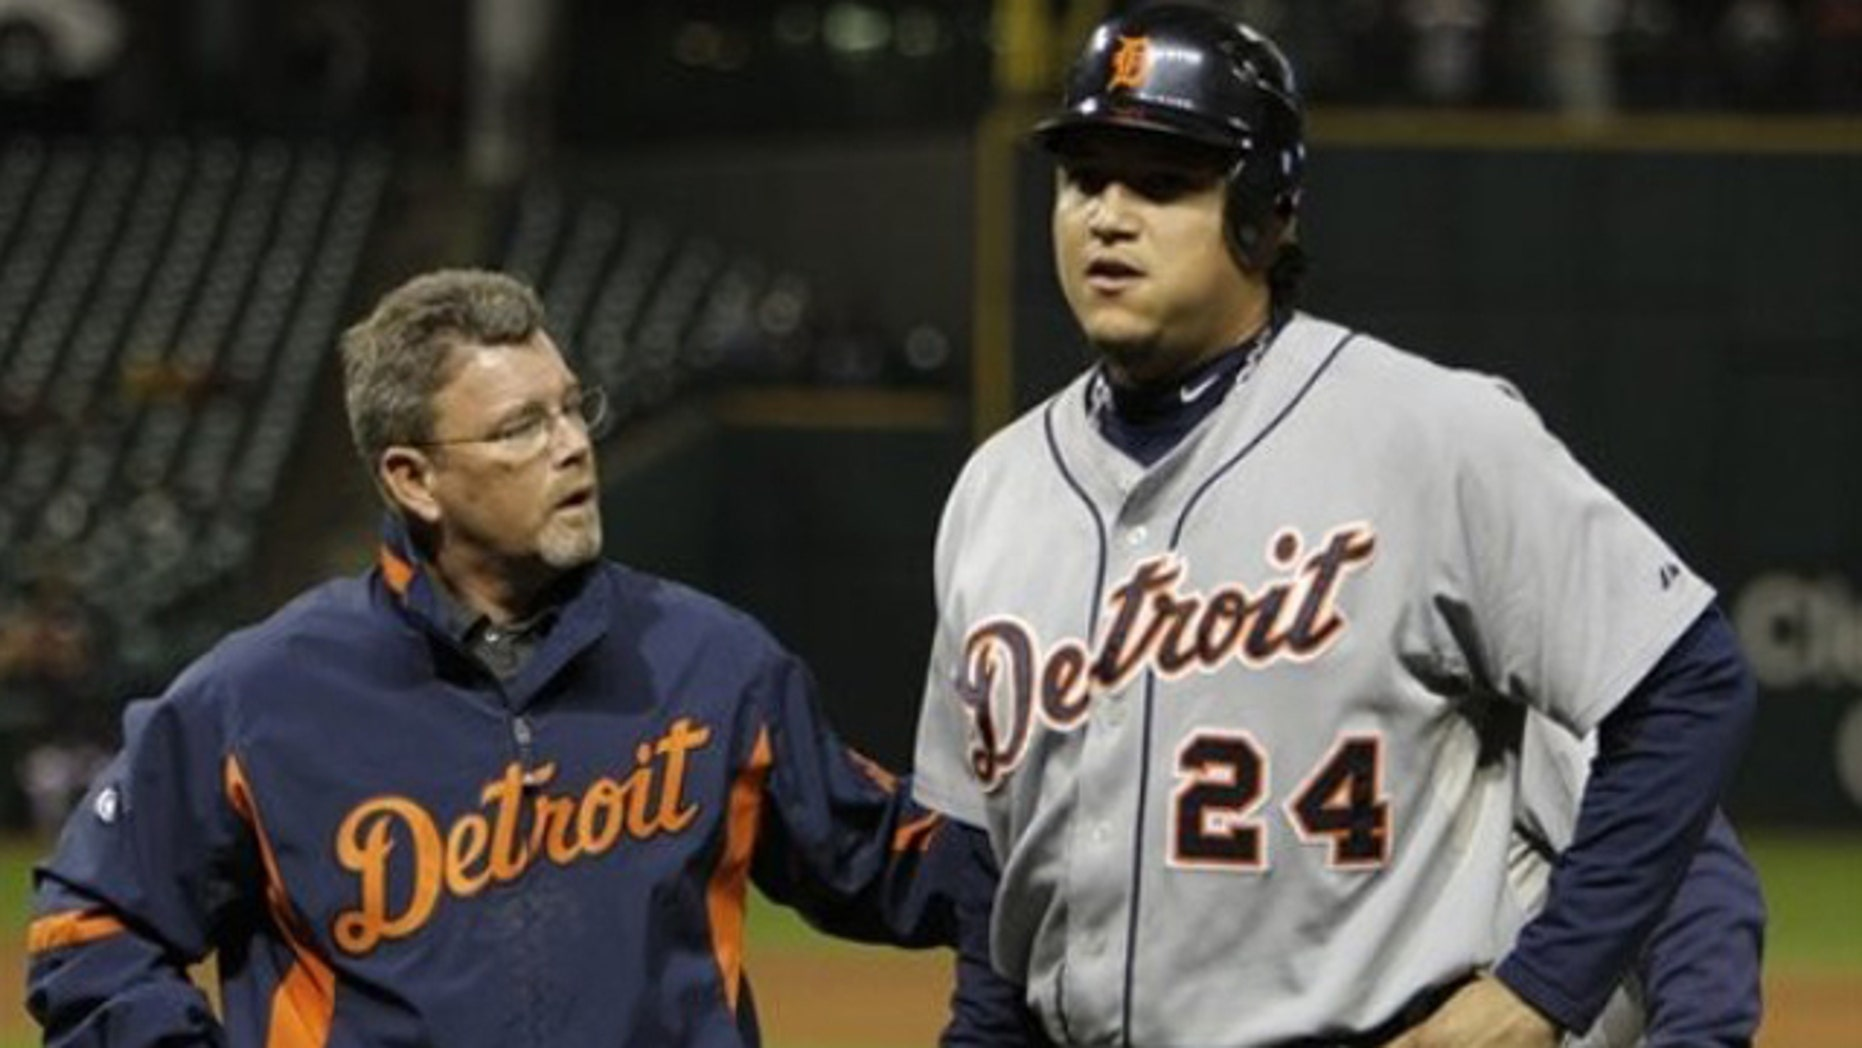 Detroit Tigers' Miguel Cabrera (24) is helped off the field by trainer Kevin Rand after injuring himself diving back into first base on a pickoff attempt in the seventh inning of a baseball game against the Cleveland Indian on Monday, Sept. 27, 2010, in Cleveland.